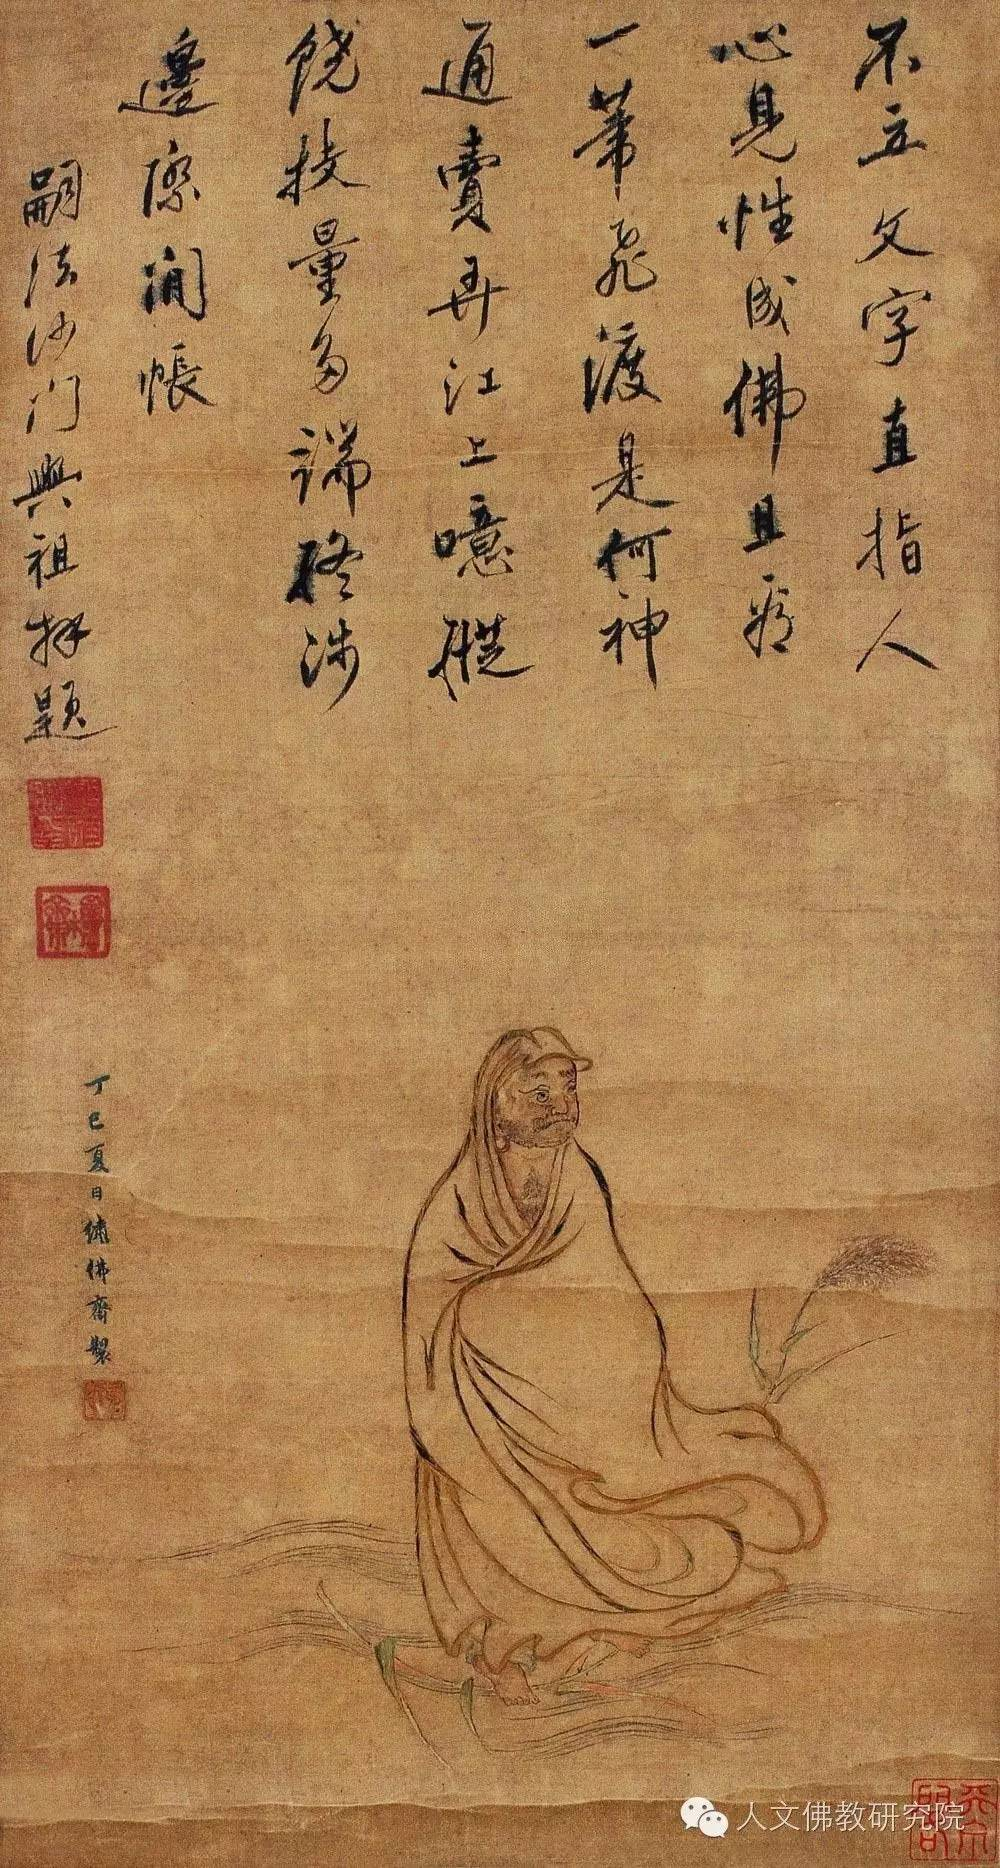 Bodhidharma crossing the Yangtze river on a reed